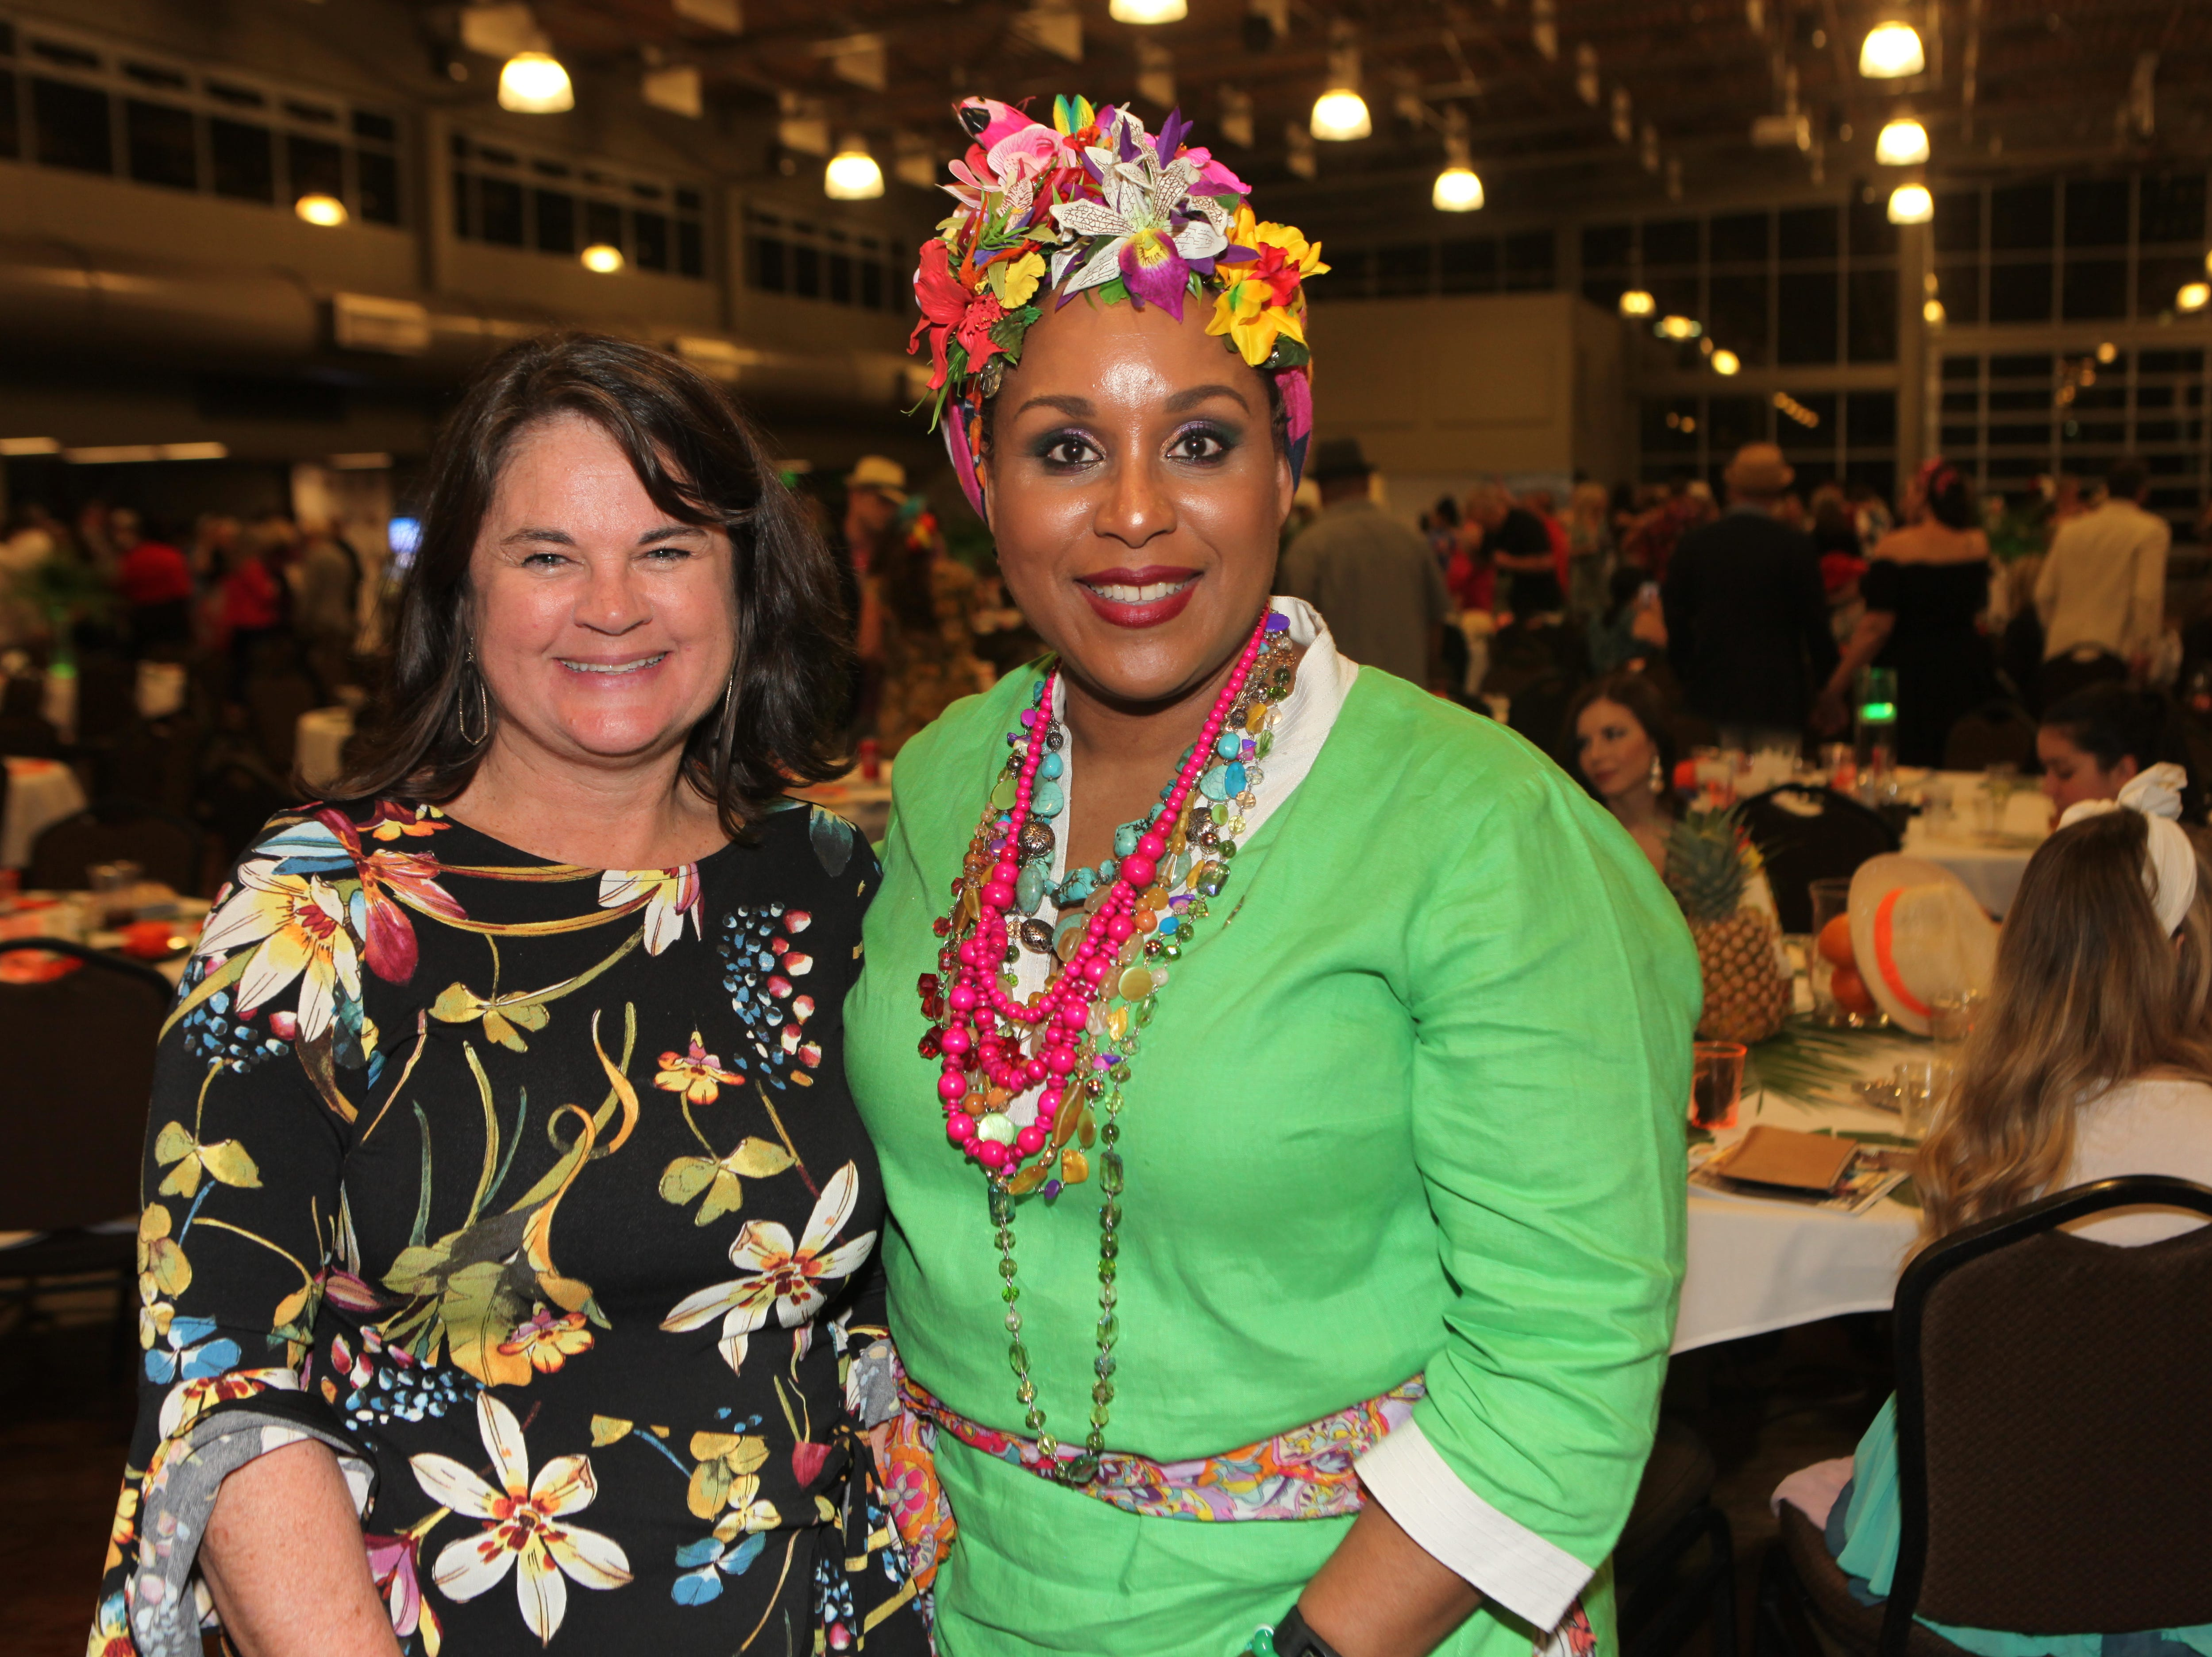 Karen Blick and Olivia Monteso Smithson at the Fort Campbell Spouses Club Very Important Charity Event on March 9, 2019.